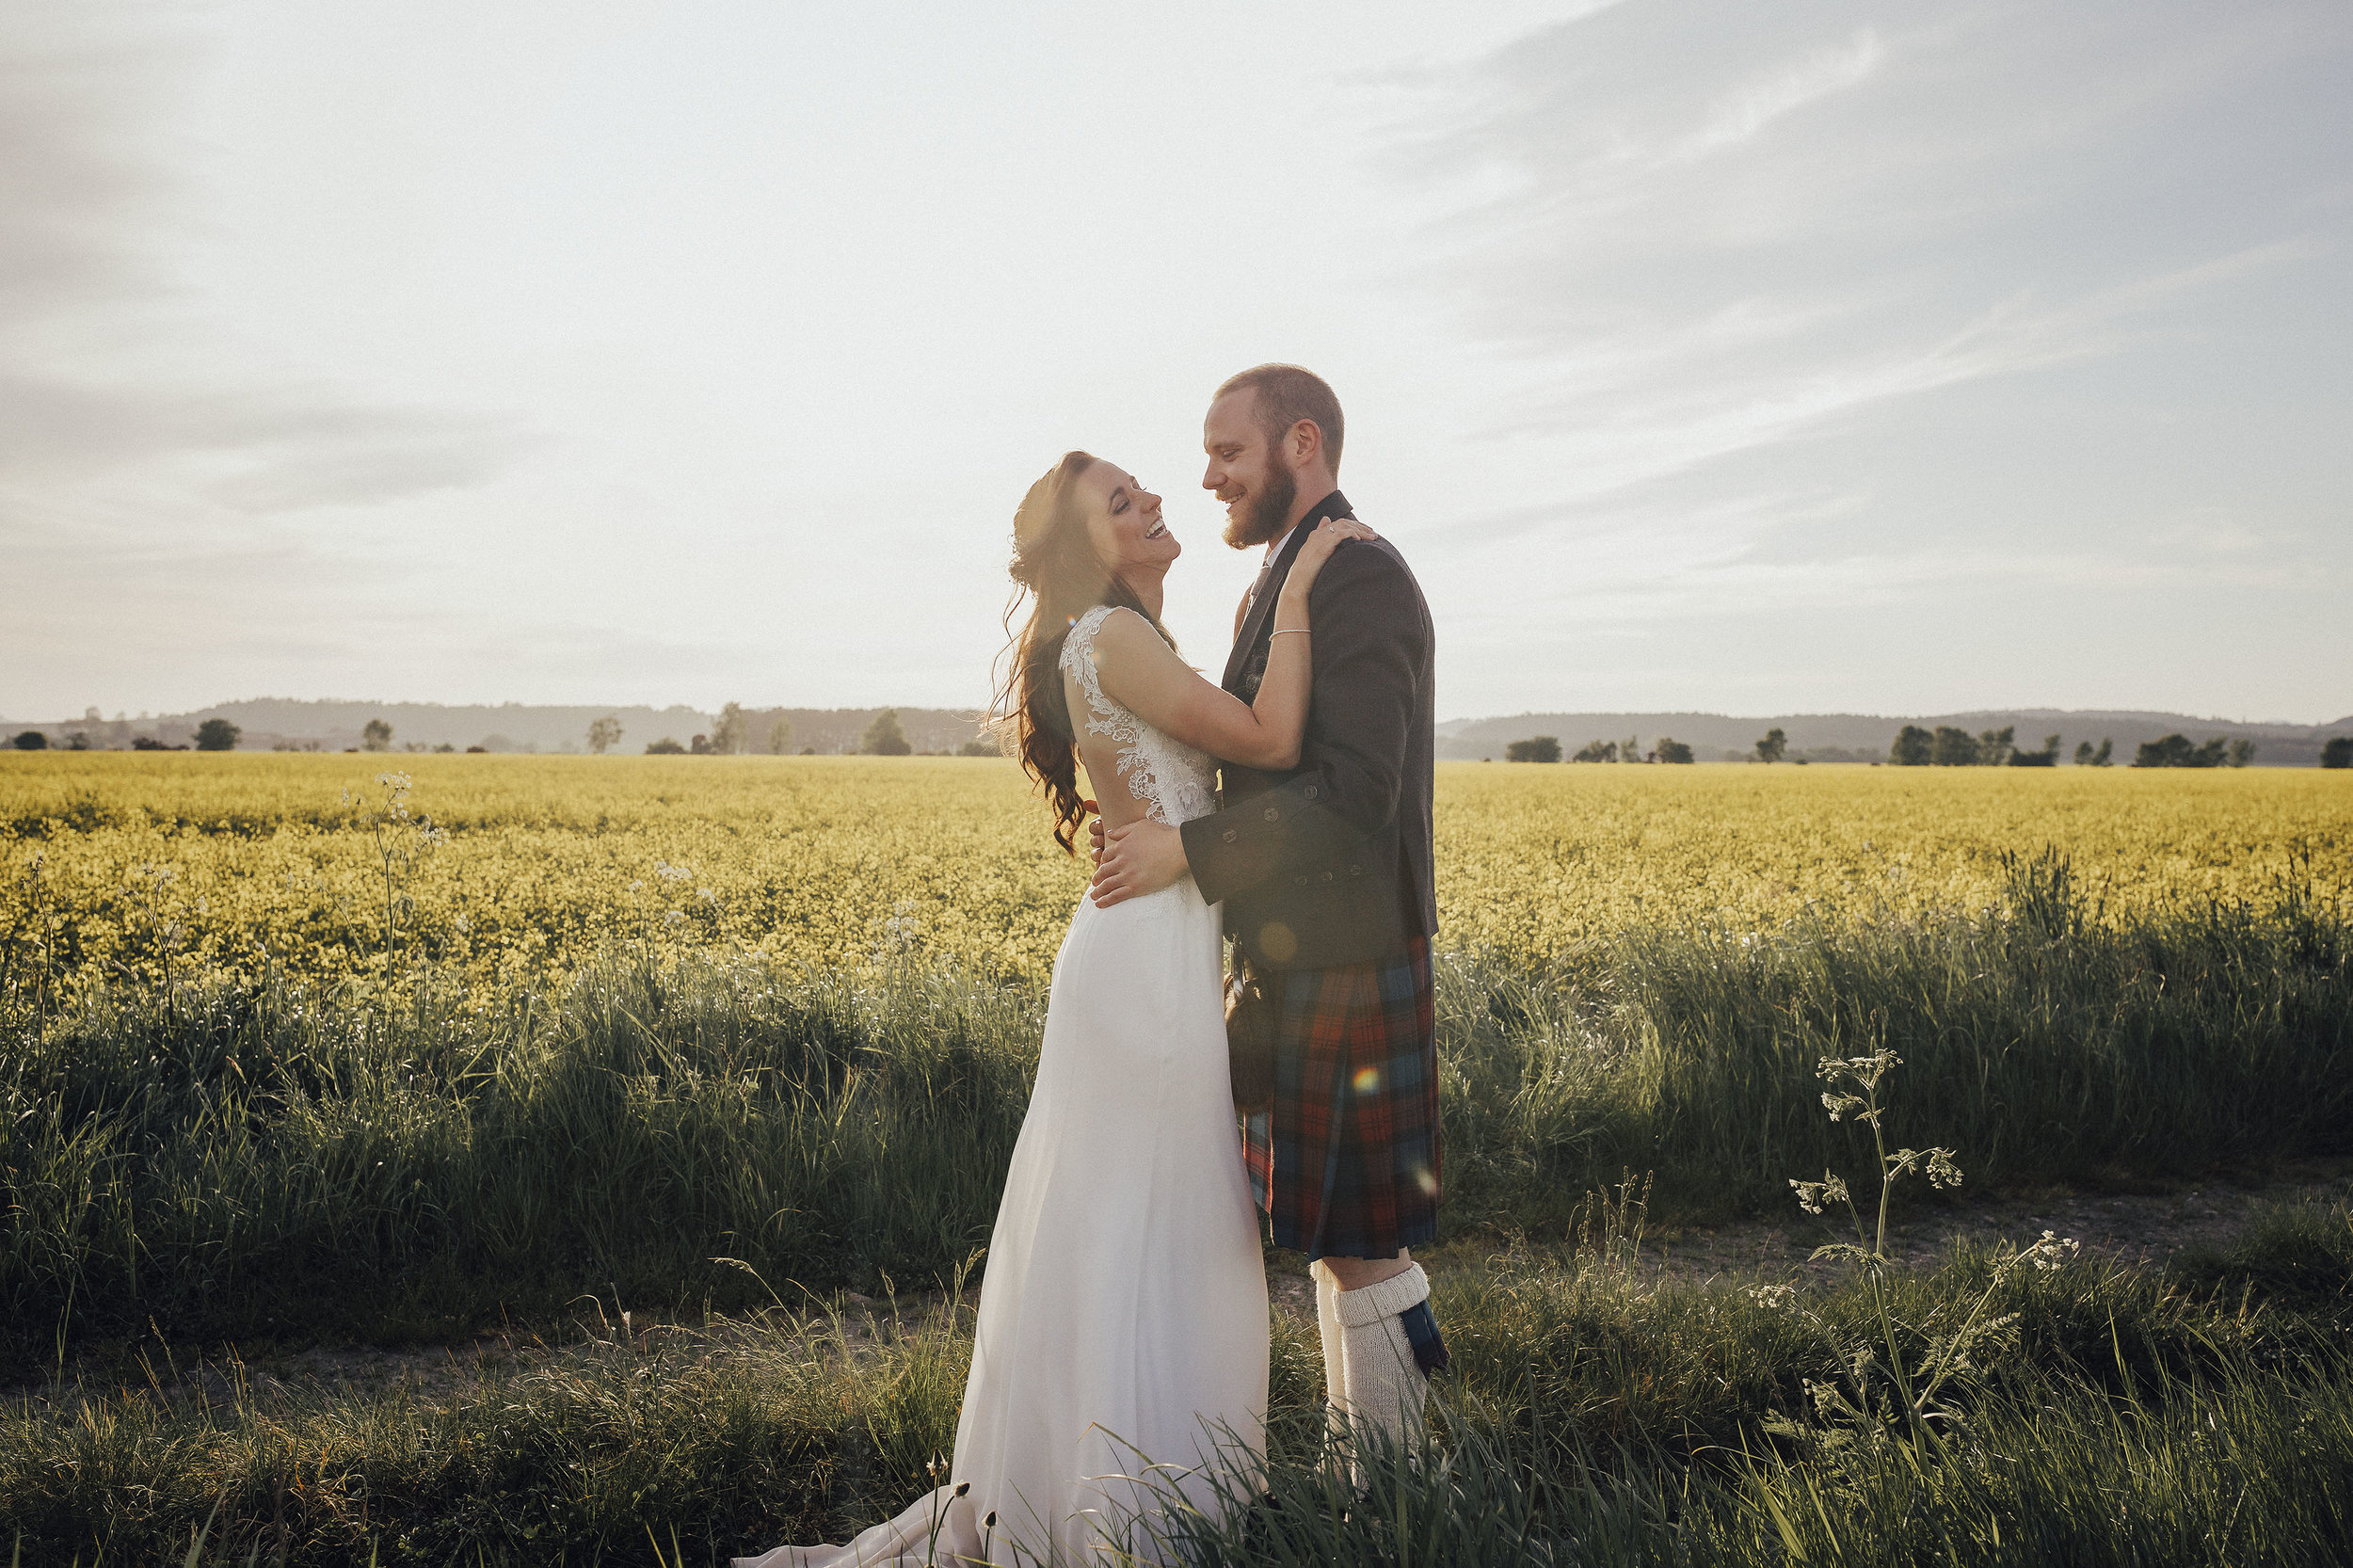 THE_RHYND_WEDDING_PHOTOGRAPHER_PJ_PHILLIPS_PHOTOGRAPHY_119.jpg